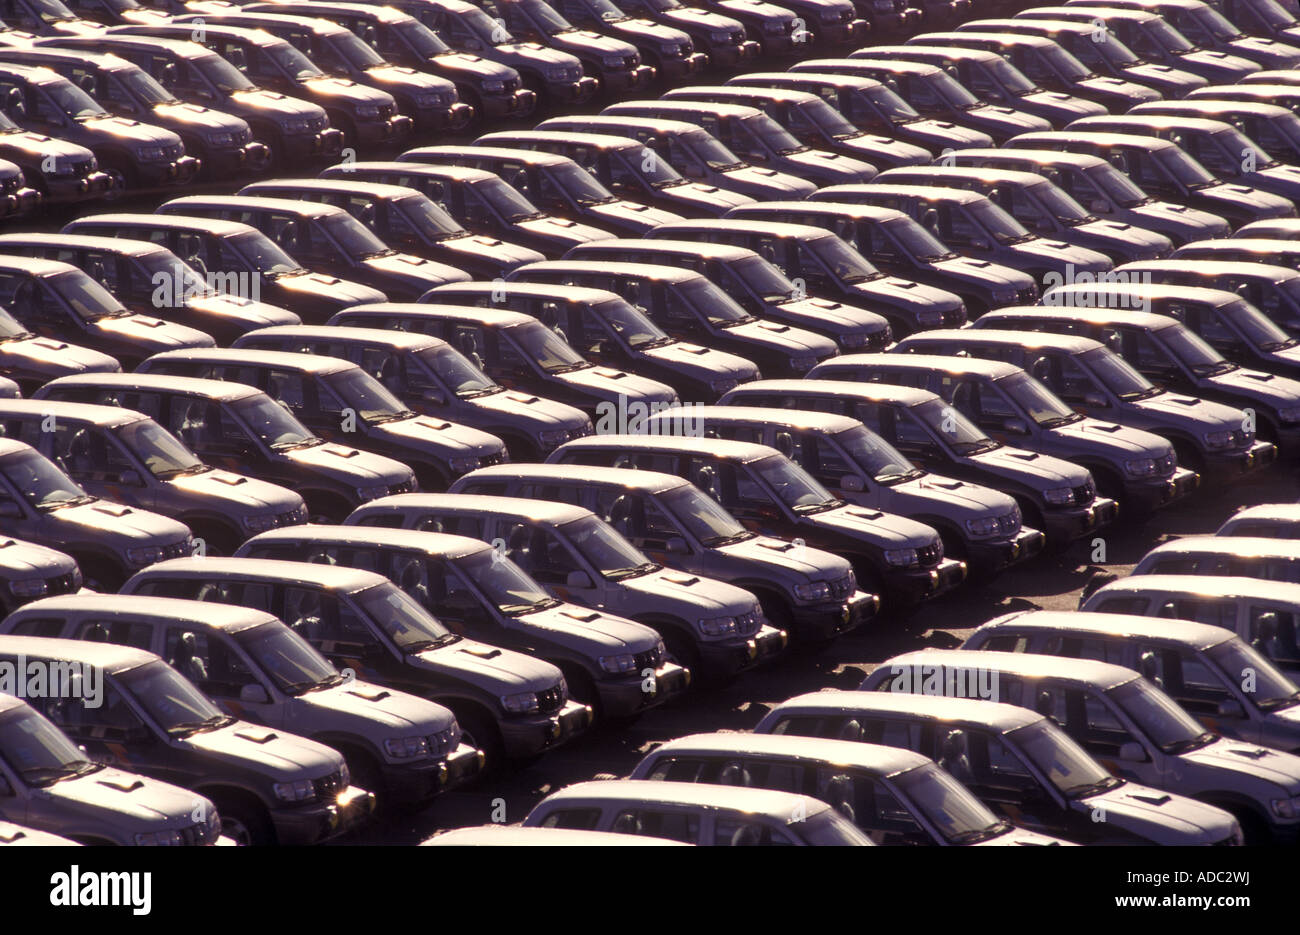 Cars for exportation Fiat plant Brazil Automobile industry Mass production - Stock Image